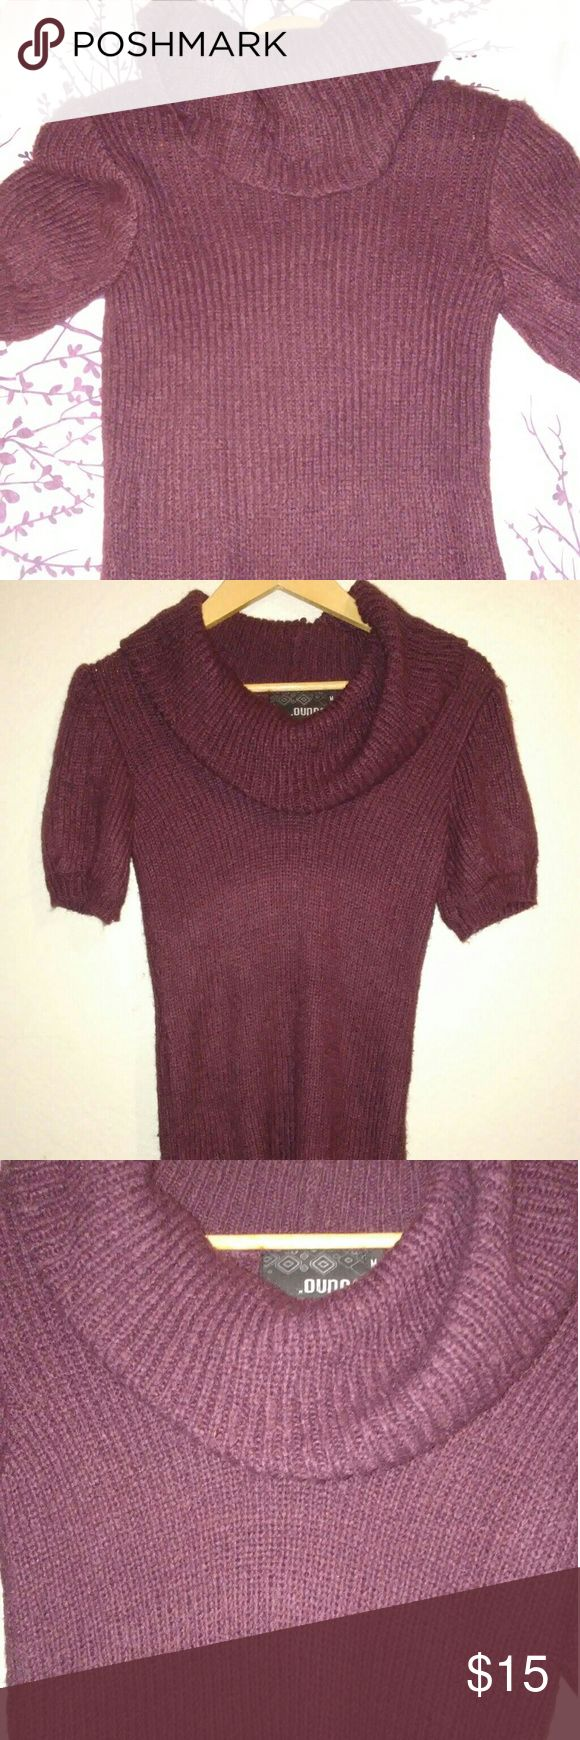 Burgundy Dress Great look with leggins during the winter. Size M. Color: Burgundy. Condition: Very good condition. No imperfections .Ounce Dresses